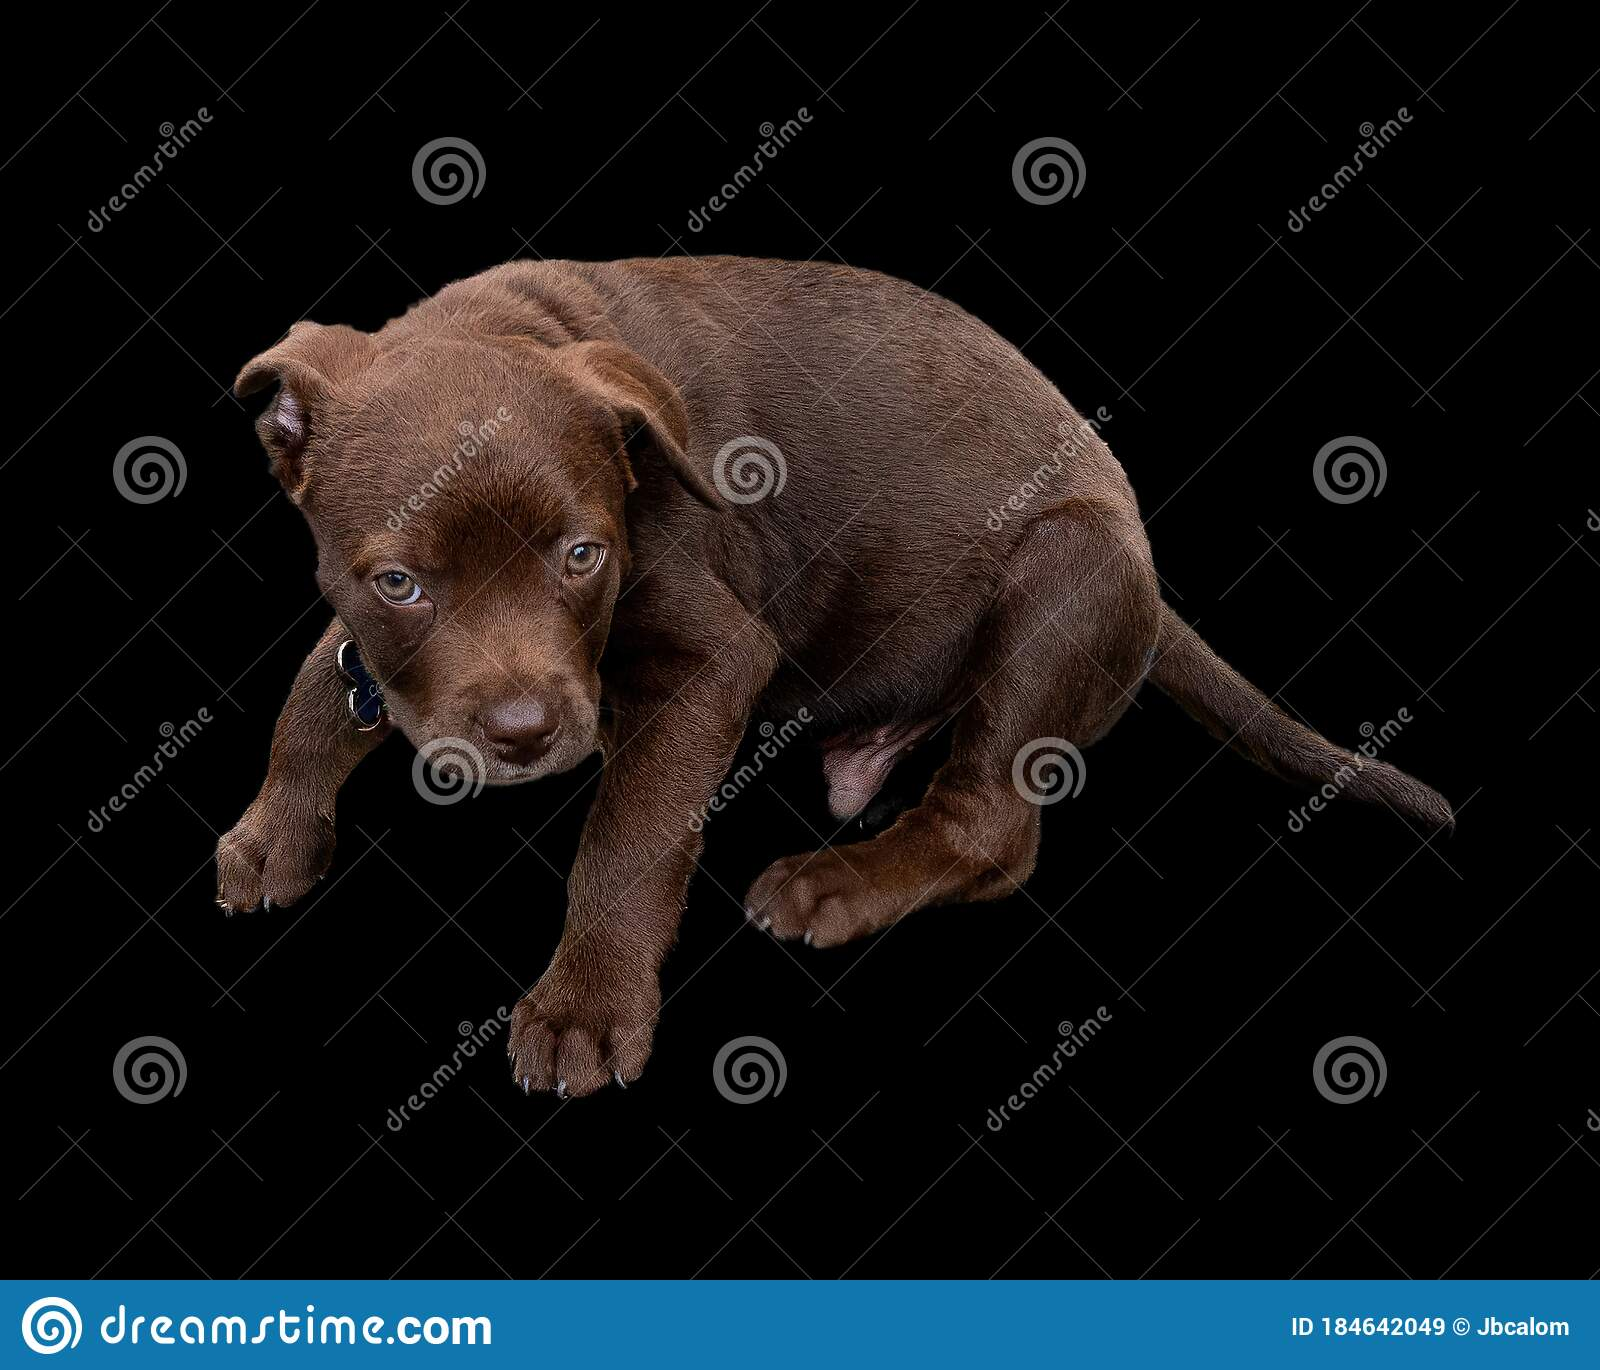 Cute Sixteen Week Old Chocolate Labrador Puppy Looking Around Stock Image Image Of Puppy Breed 184642049